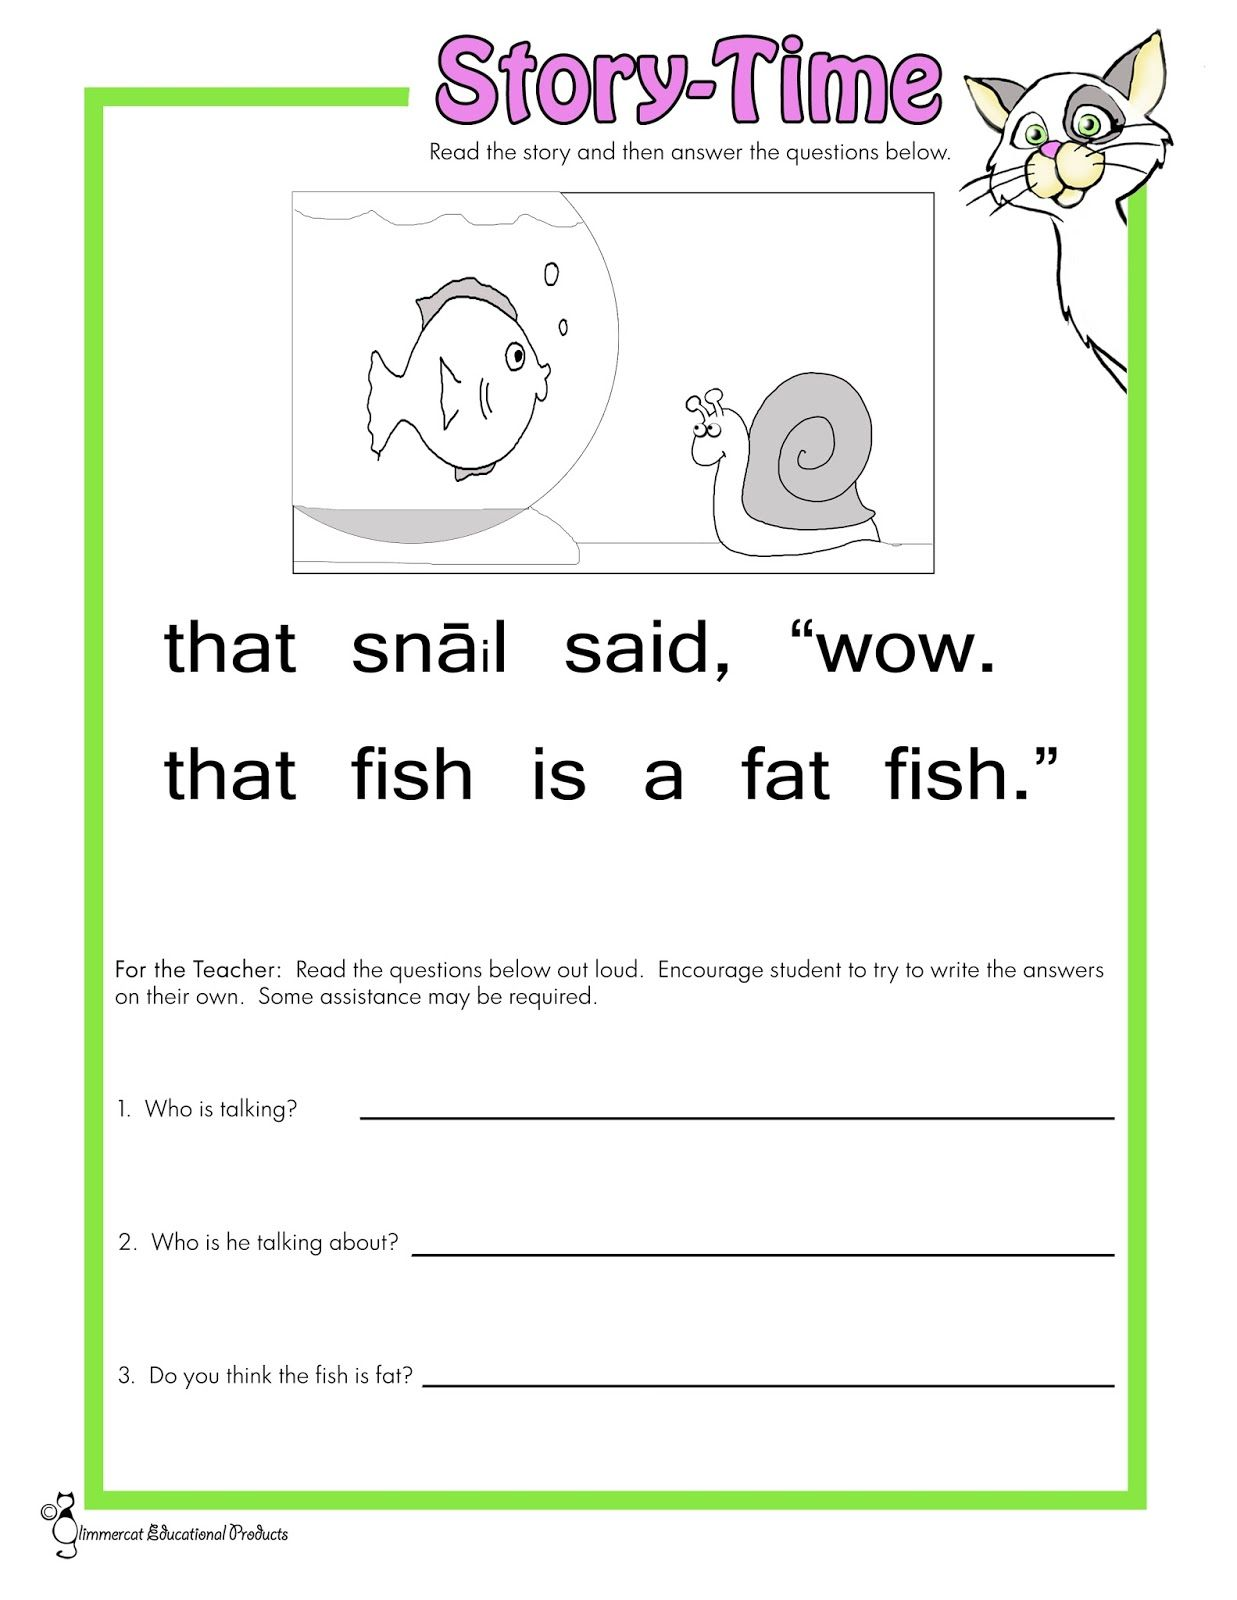 Worksheets Teach Your Child To Read In 100 Easy Lessons Worksheets link to a free phonics packet over 30 page pdf designed as of worksheets crafts reading activities for very early readers